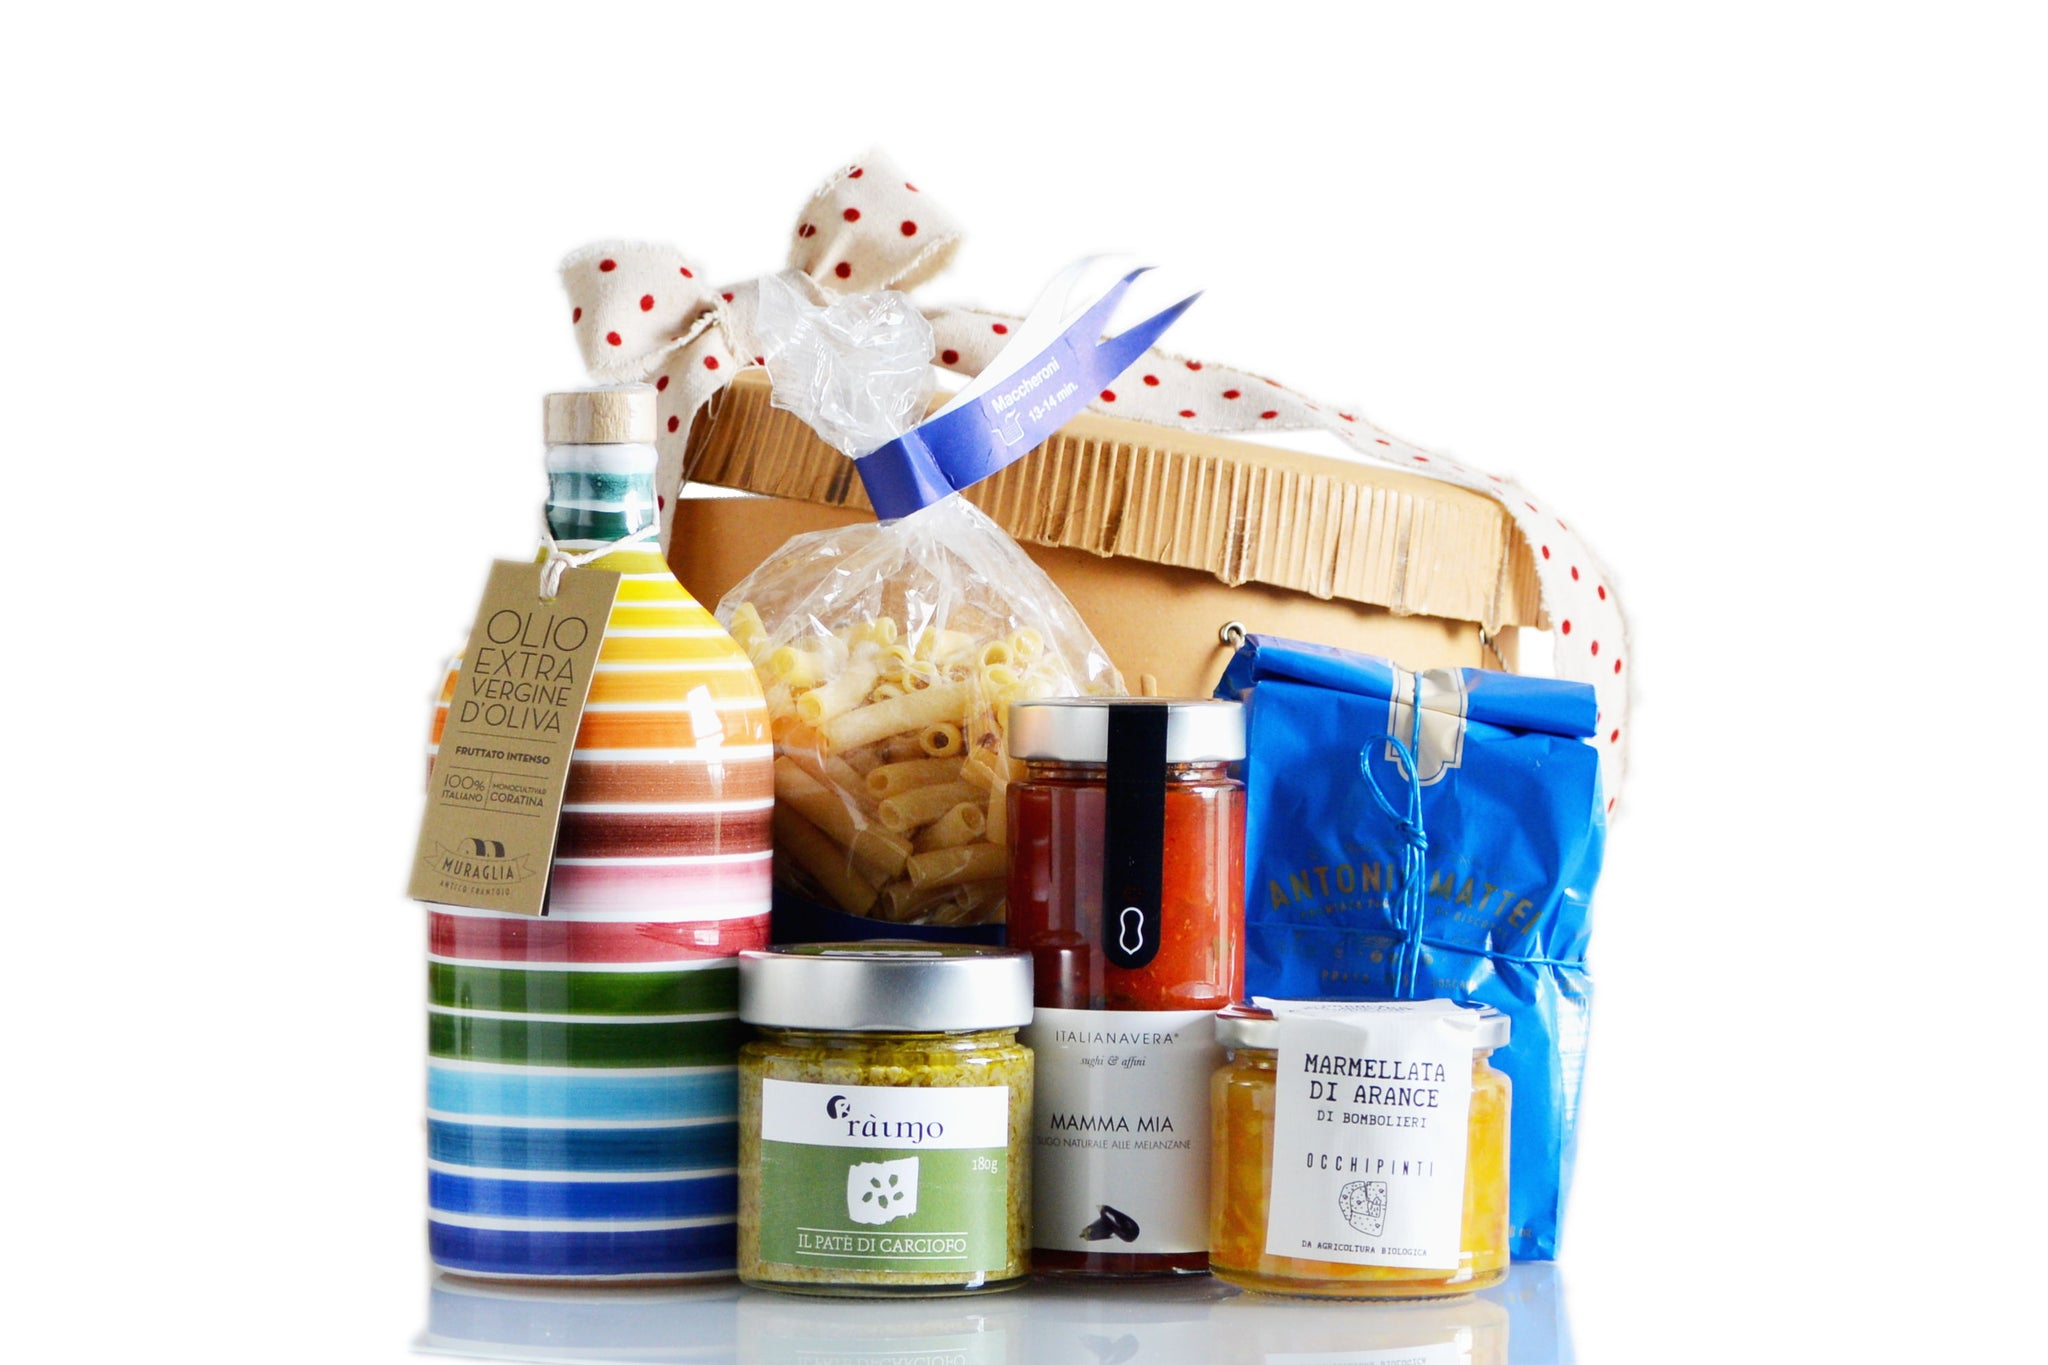 The Happiness Hamper | Limited Edition Authentic Italian Food